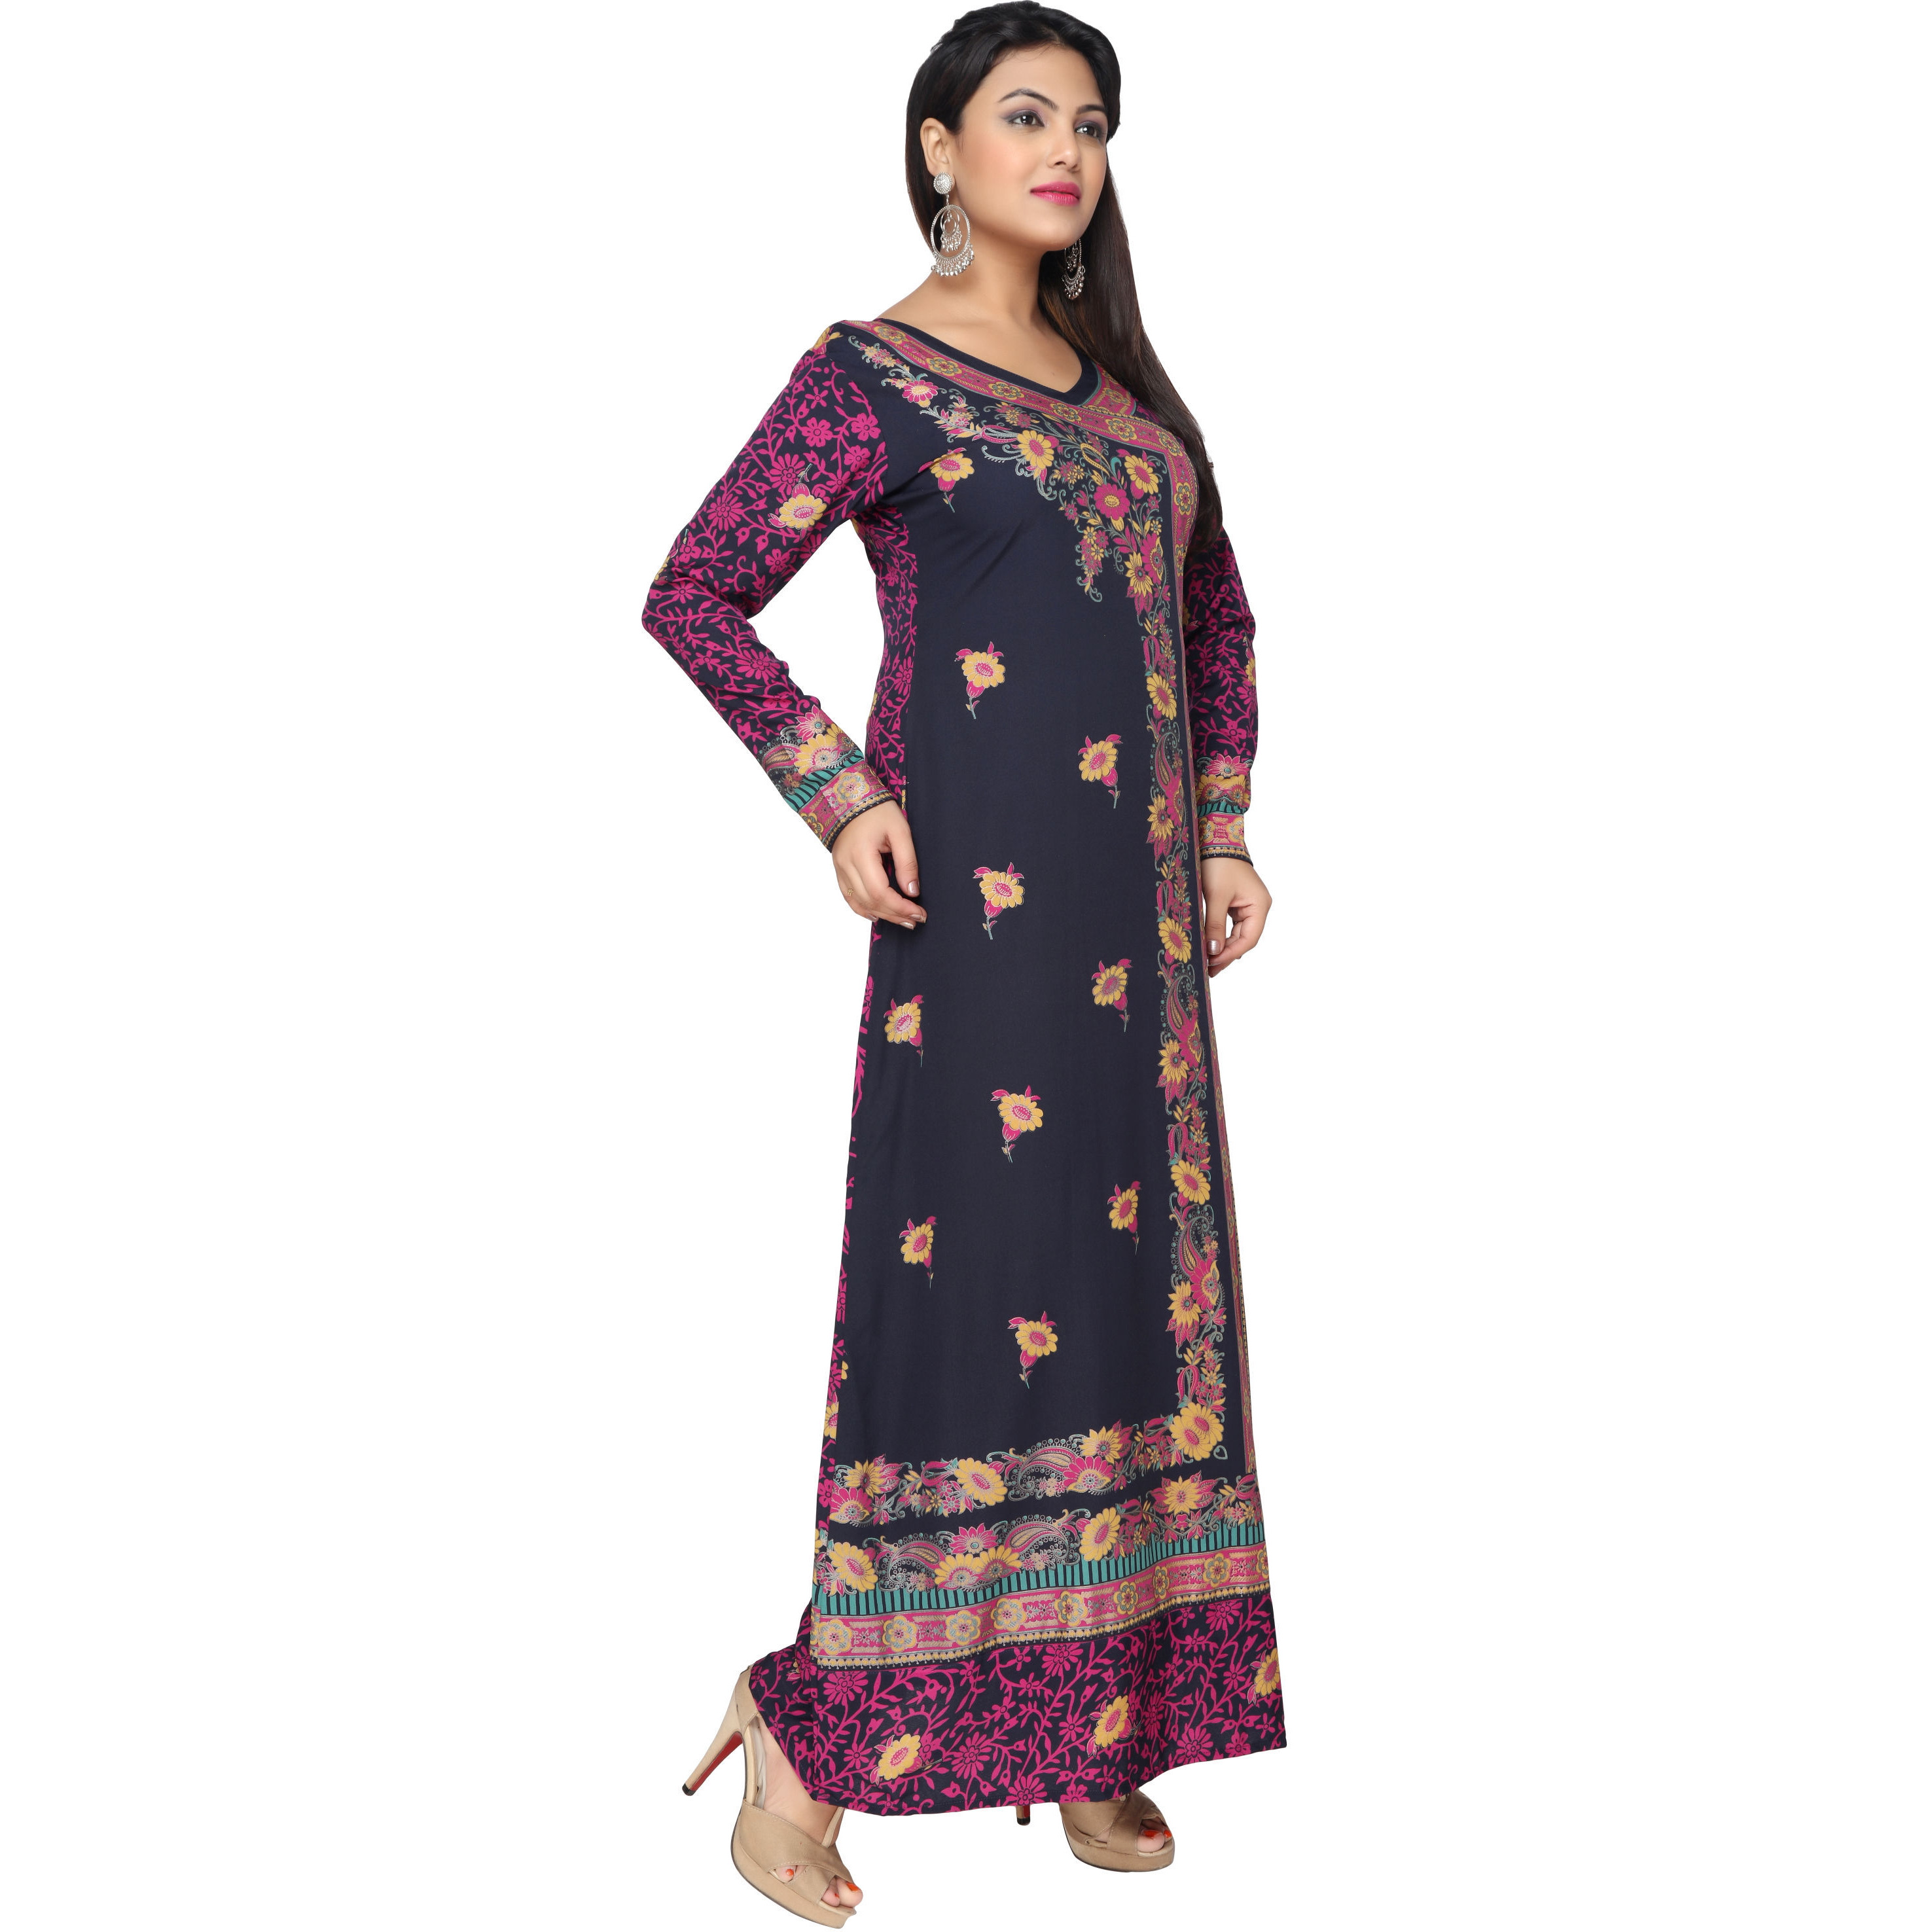 TrendyFashionMall Gold Print Kaftans Maxi Dresses with design in Front and Back (Color:TFMKFT01042-BLUEMULTI, Size:52 - 6X-PLUS)